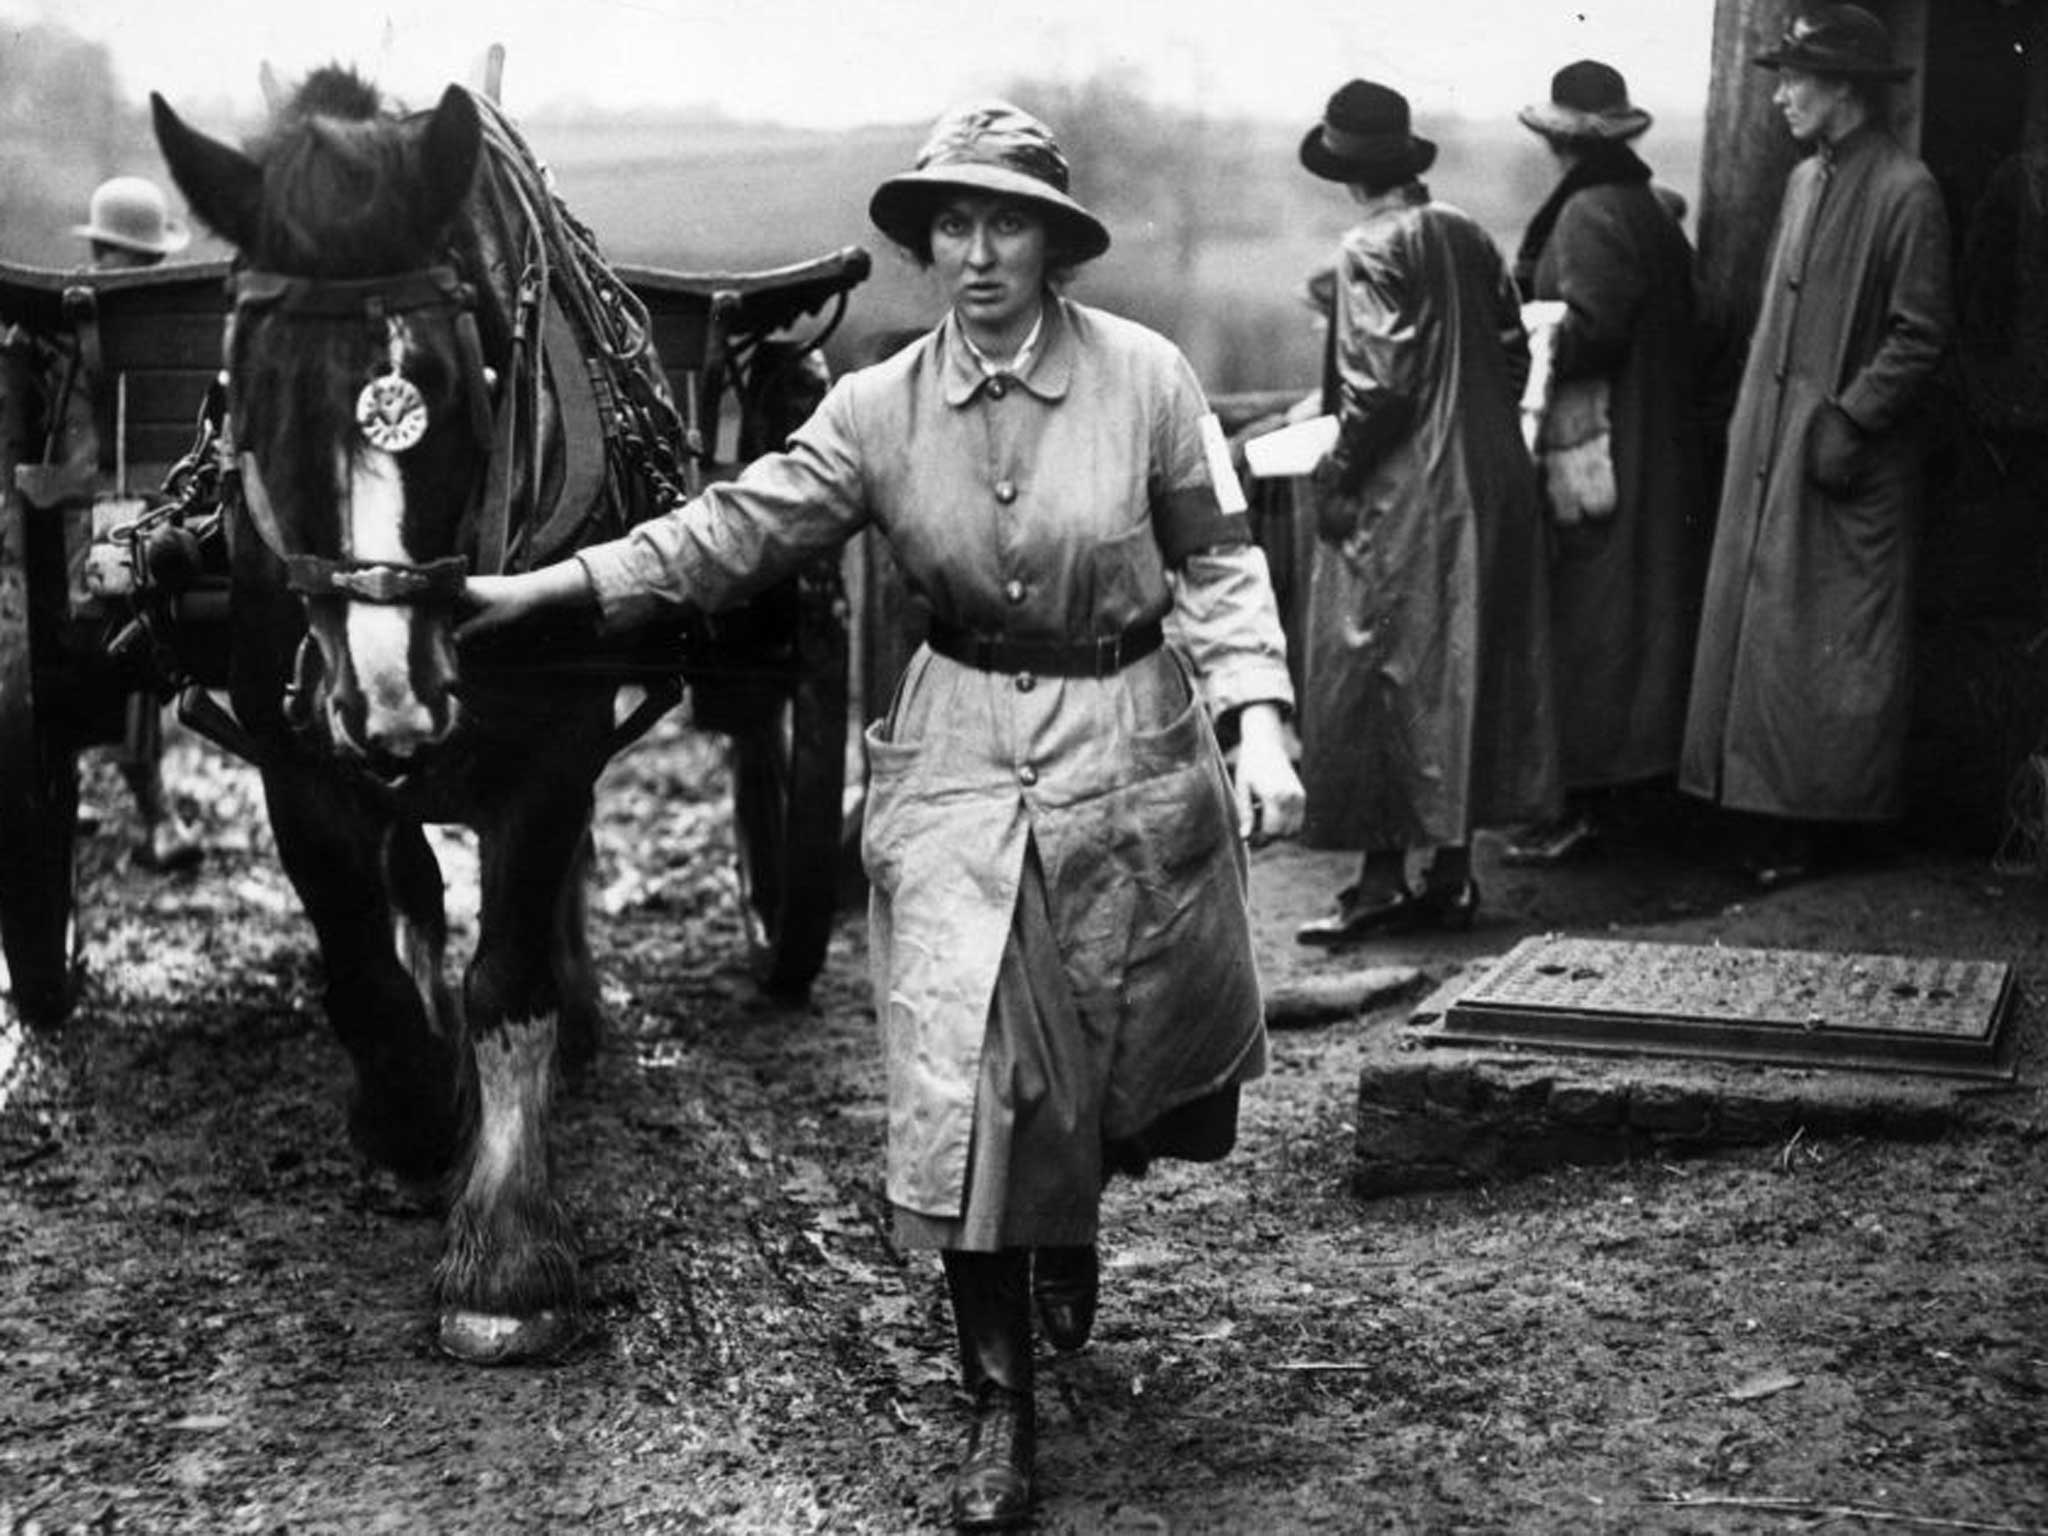 world war one change role status women england wales World war one what did ww1 do for women later, he had pledged his support to reduce britain's expenditure on armaments, describing the build-up as reckless so what swayed his opinion some believe lloyd george's change of heart related to his love of wales when germany declared war.